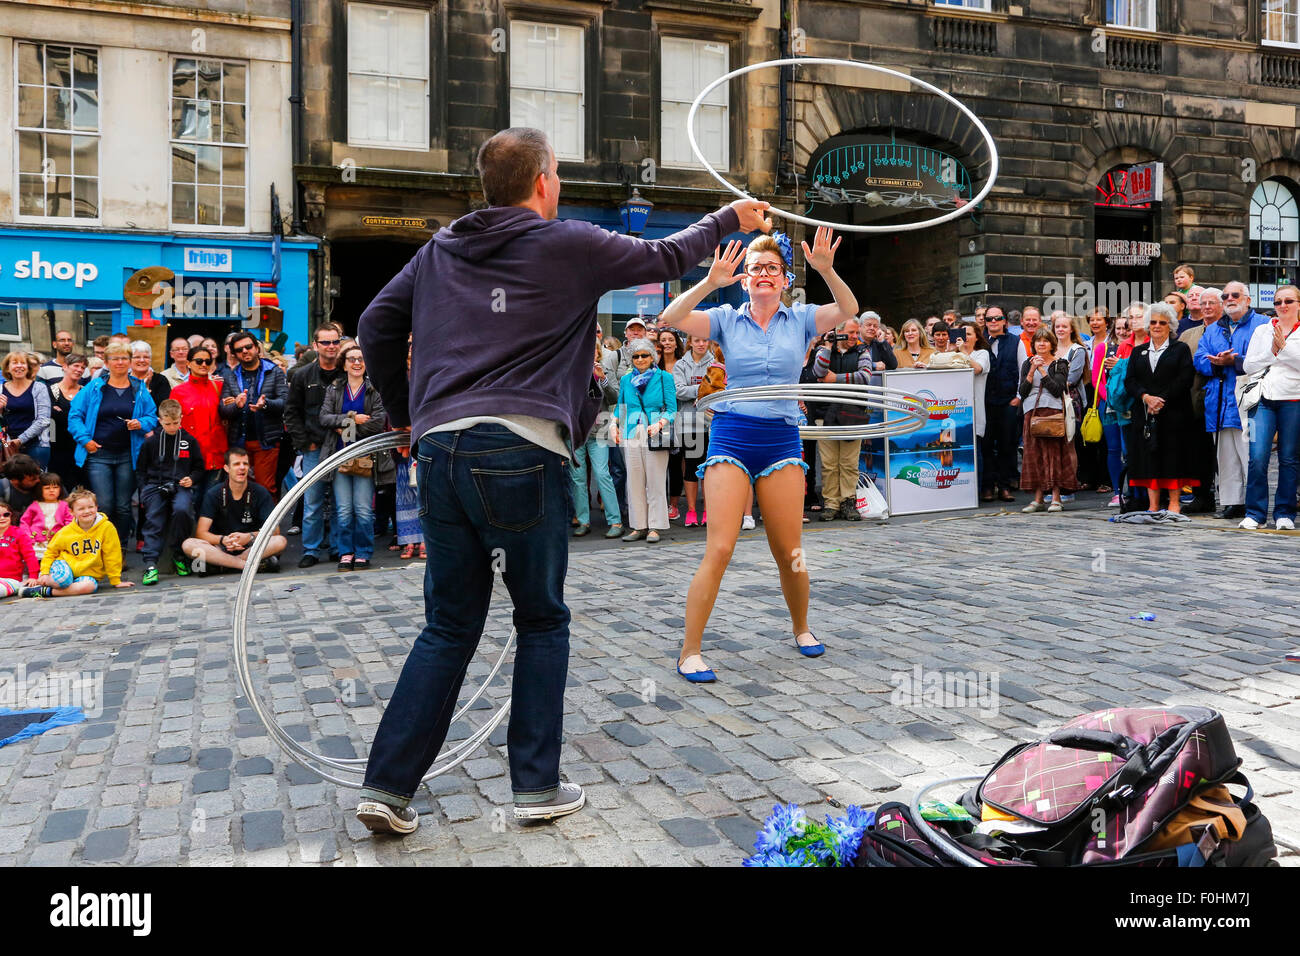 Acrobat called 'Maples' performing with hoola hoops in The Royal Miler, Edinburgh at the Fringe Festival, - Stock Image